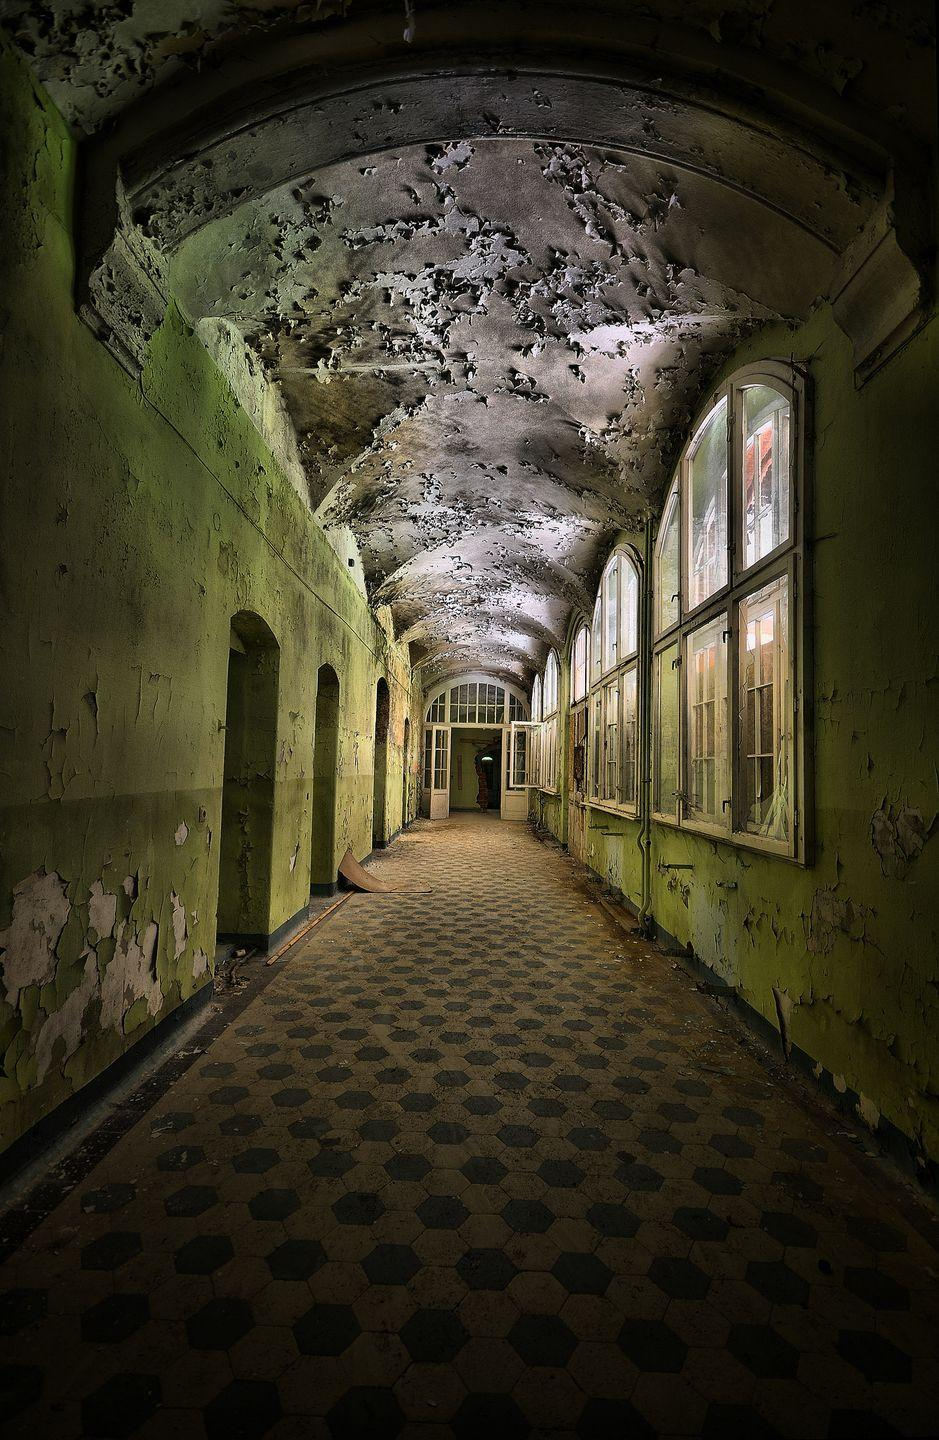 <p>Moss engulfs the decaying walls of this empty sanatorium in Germany.</p>